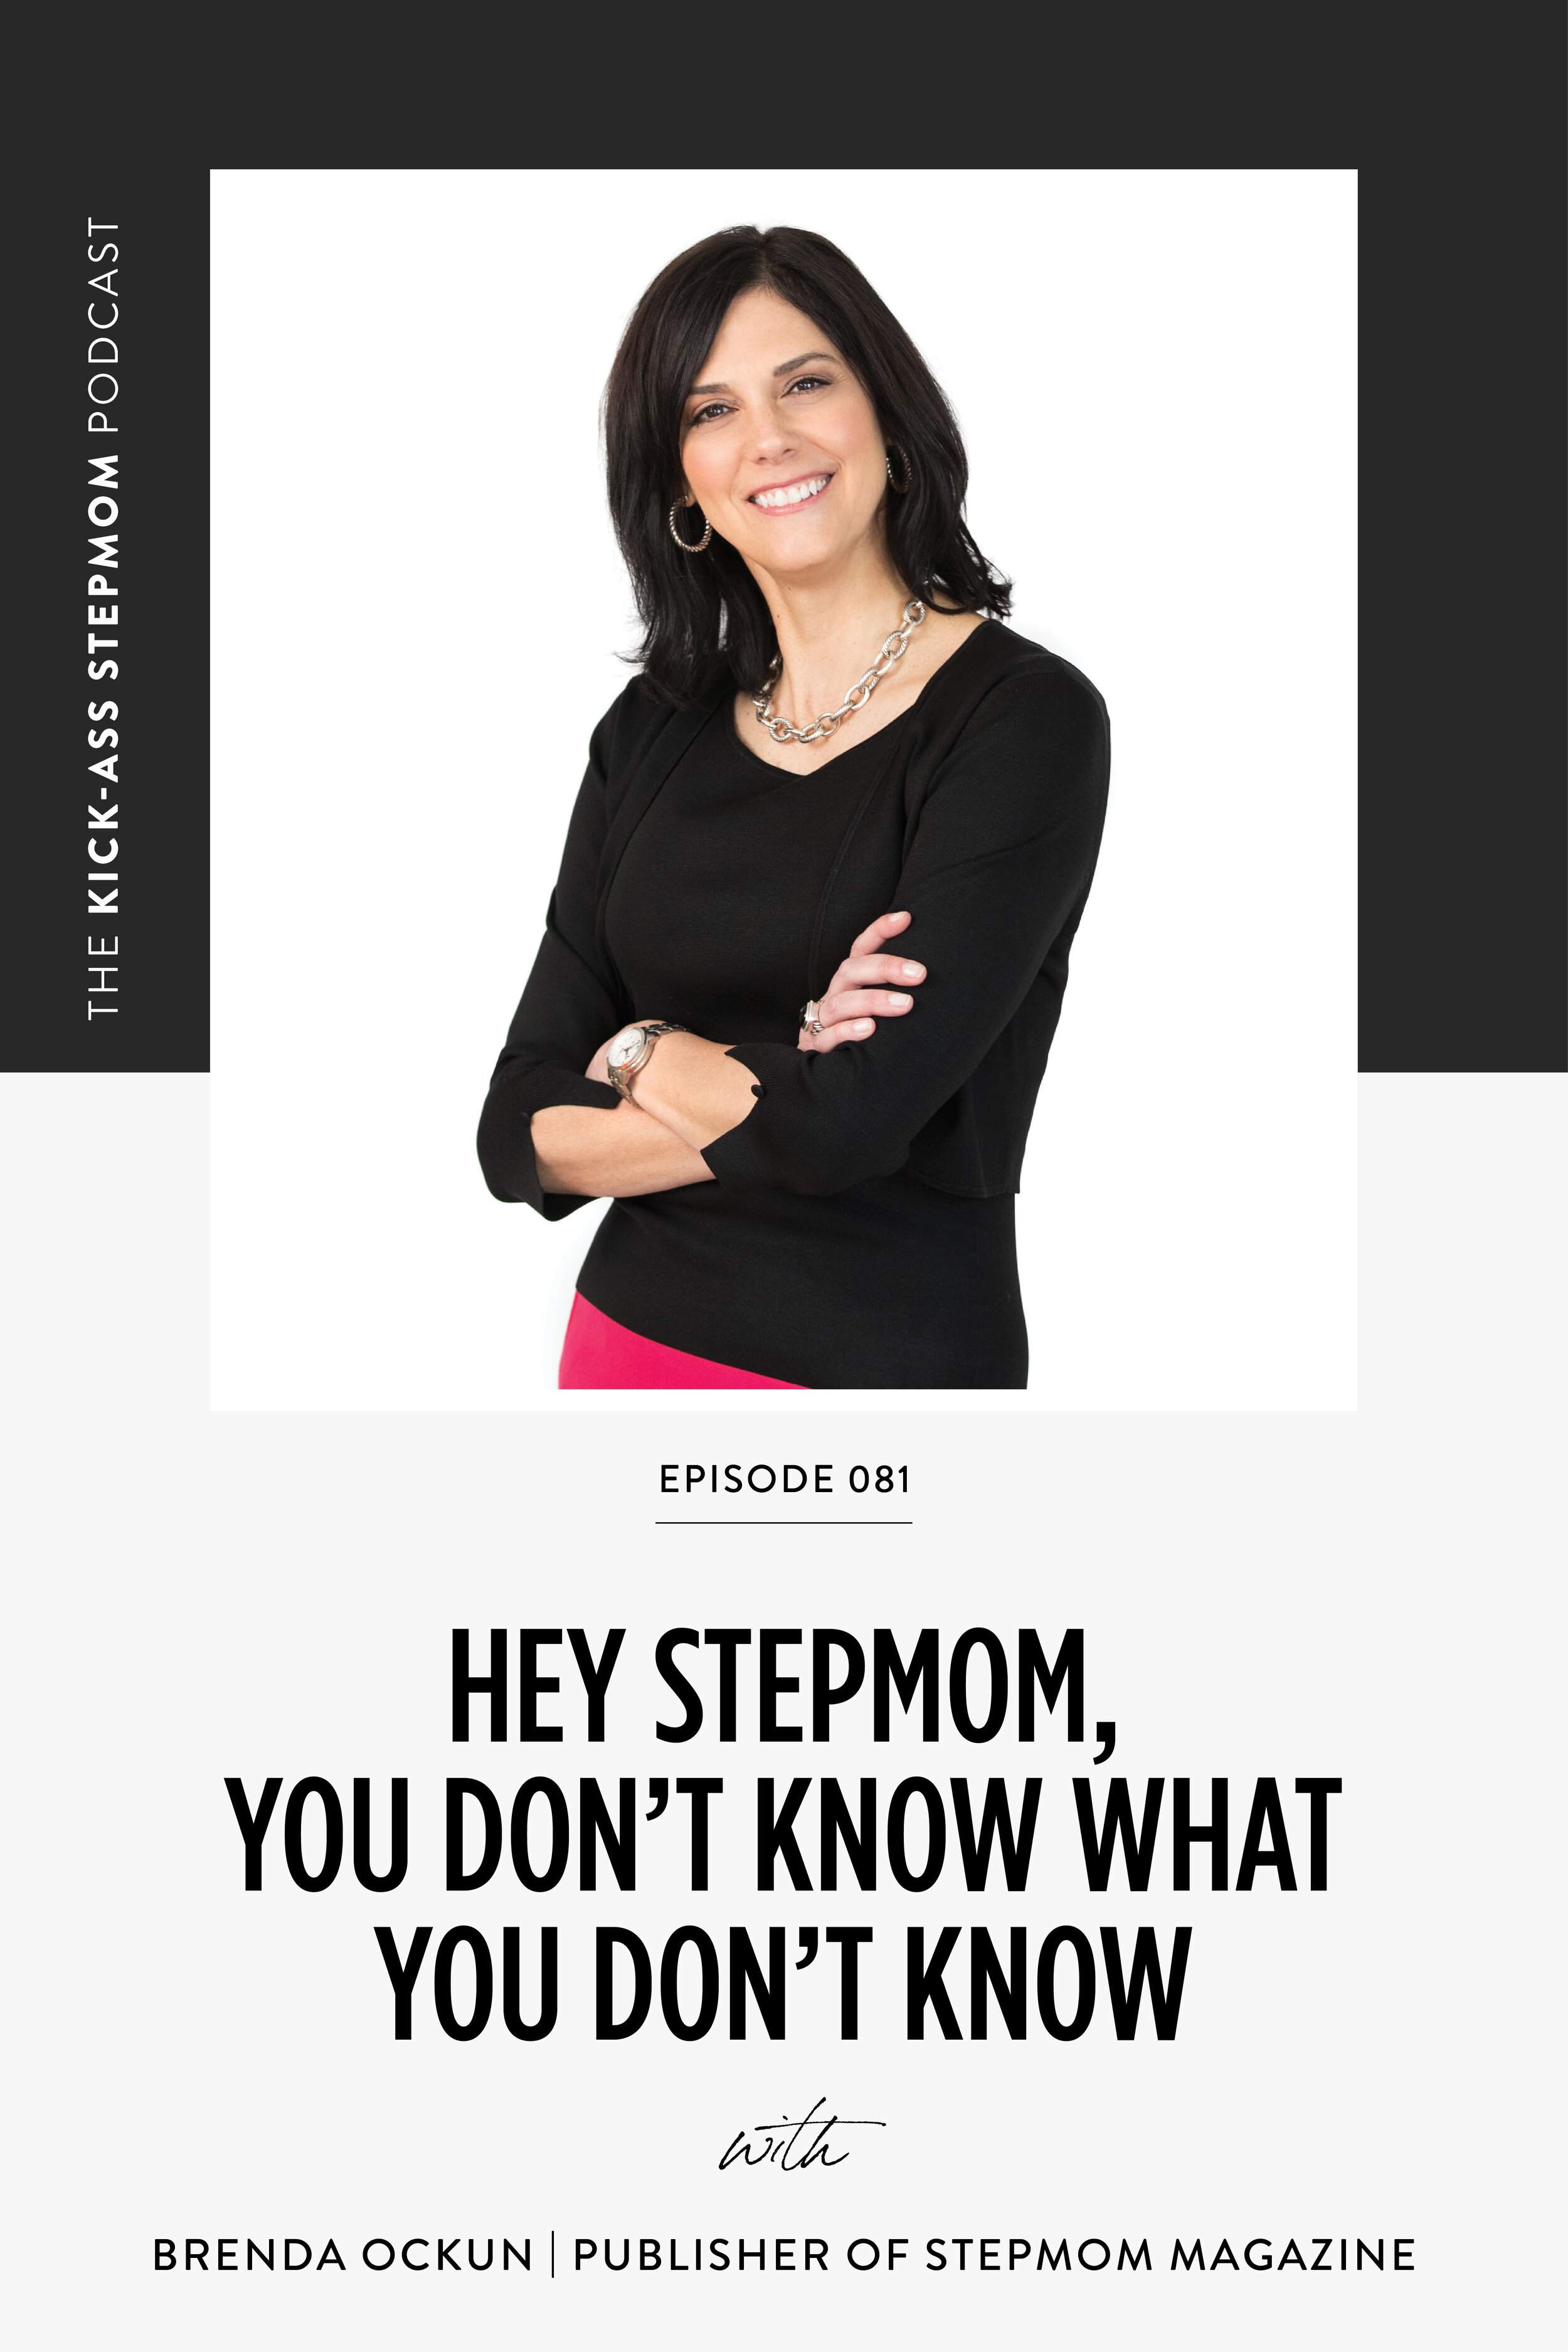 The Kick-Ass Stepmom Podcast Episode 081 - You Don't Know What You Don't Know with Brenda Ockun, Publisher of Stepmom Magazine